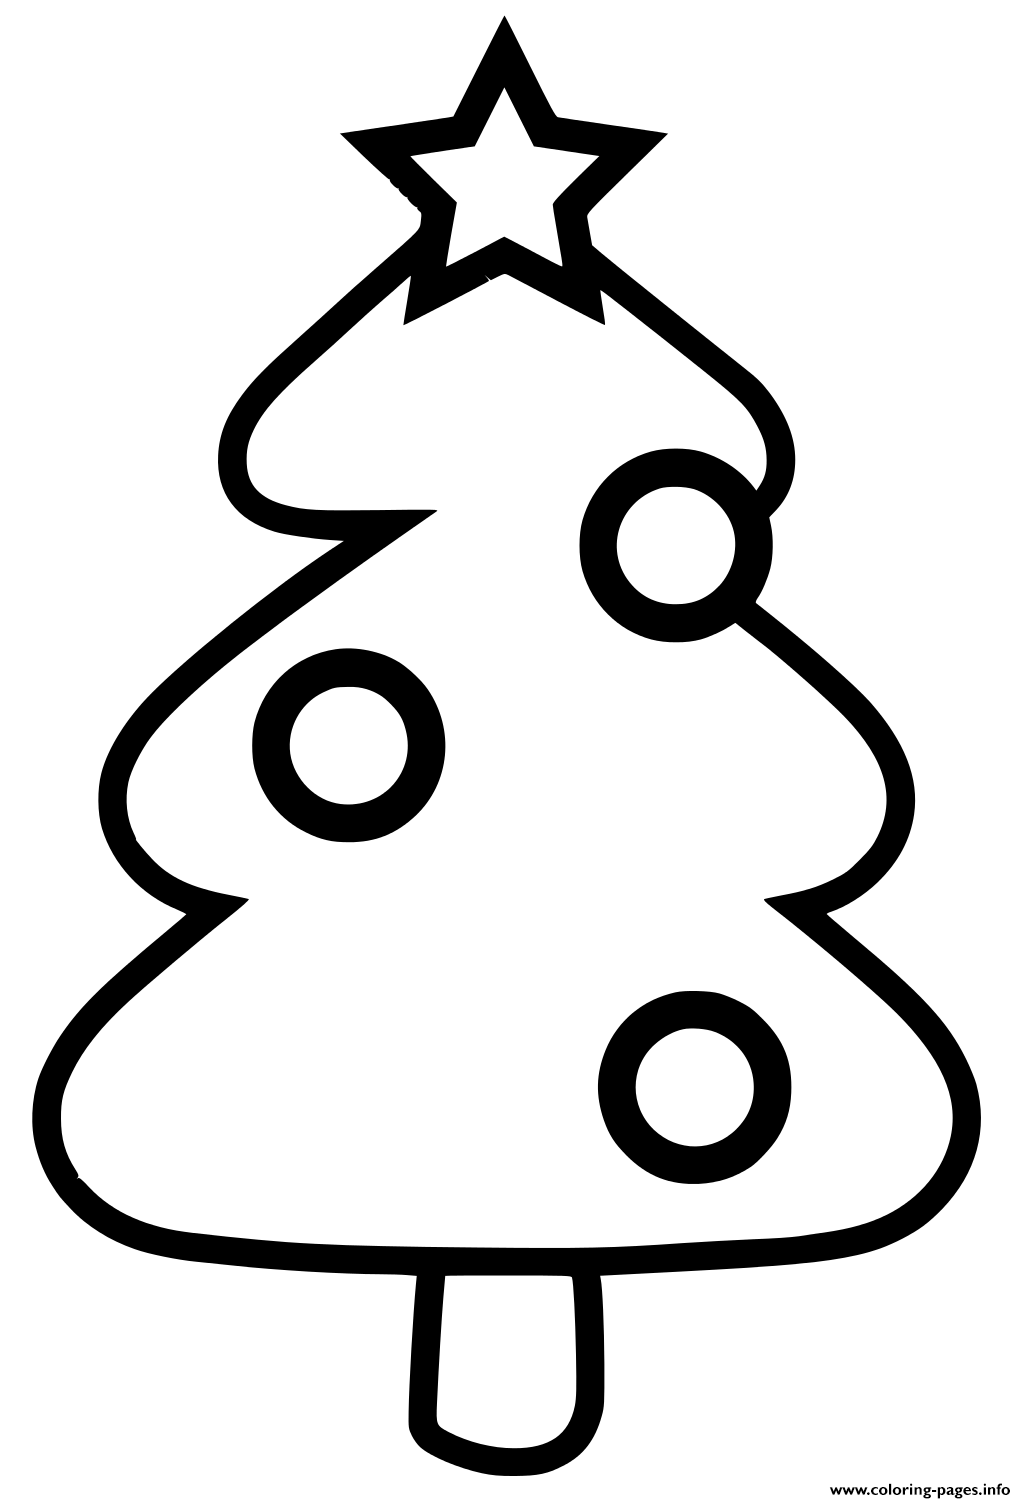 Christmas Coloring Pages | Christmas coloring sheets, Santa coloring pages,  Free christmas coloring pages | 1503x1026